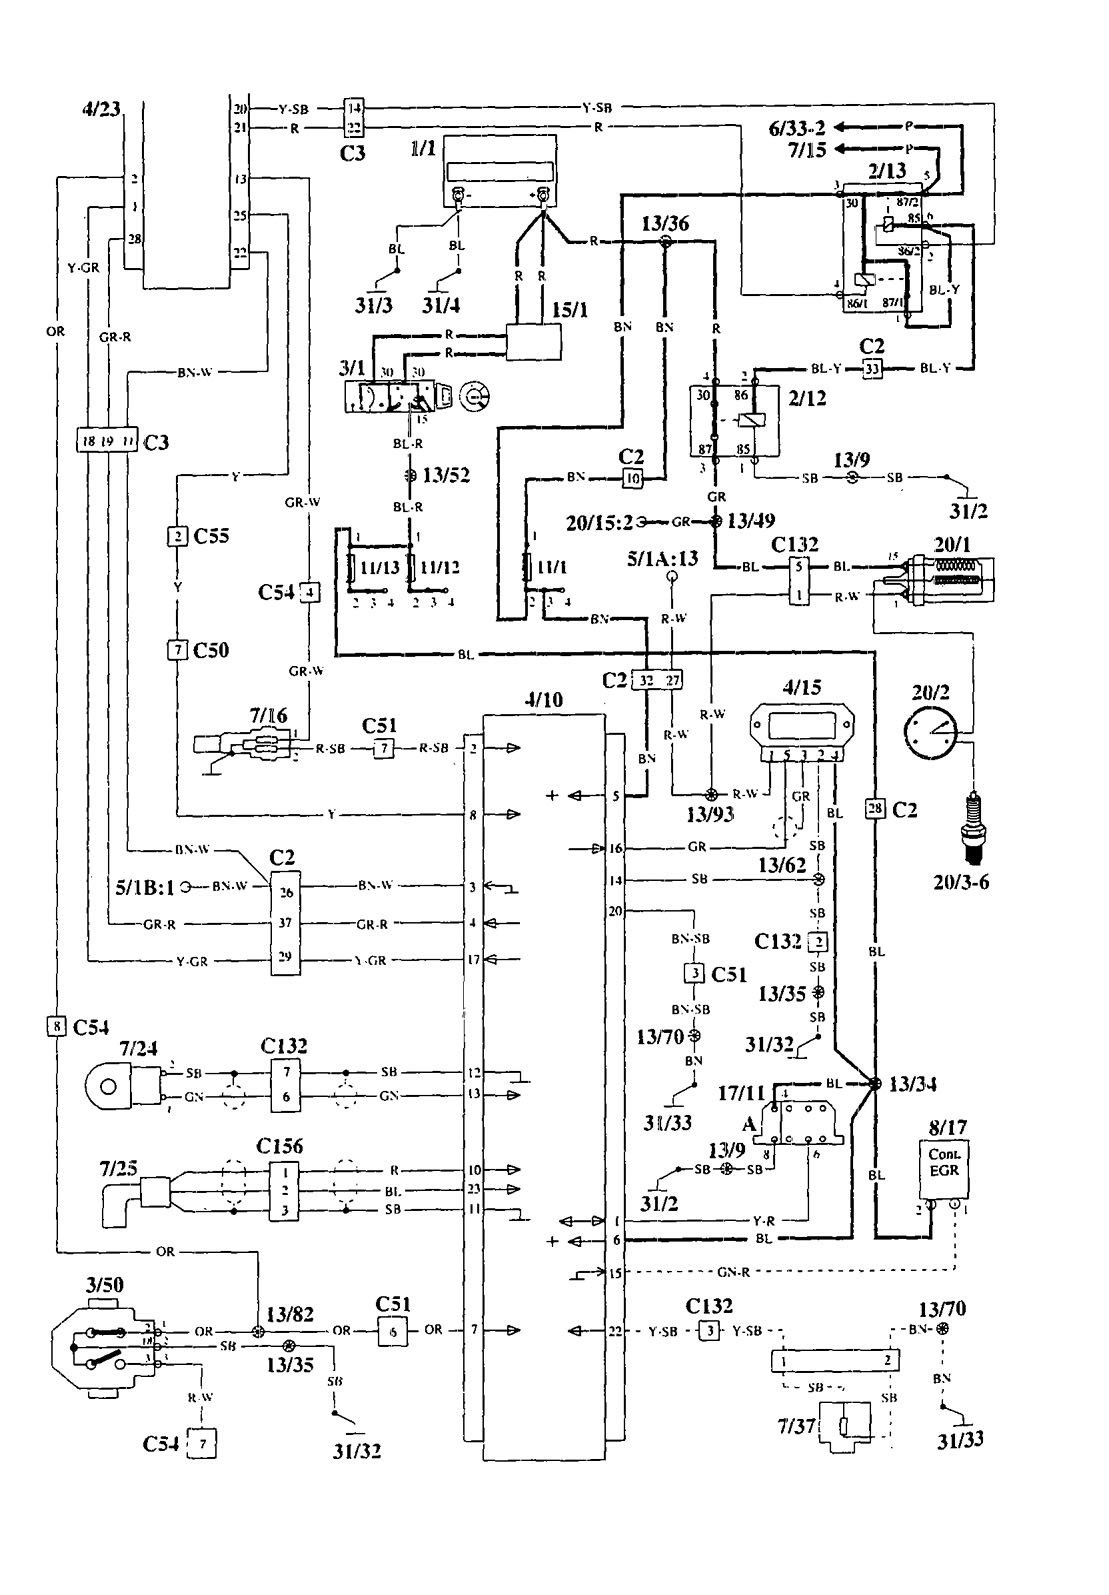 Zx2 Wiring Diagram